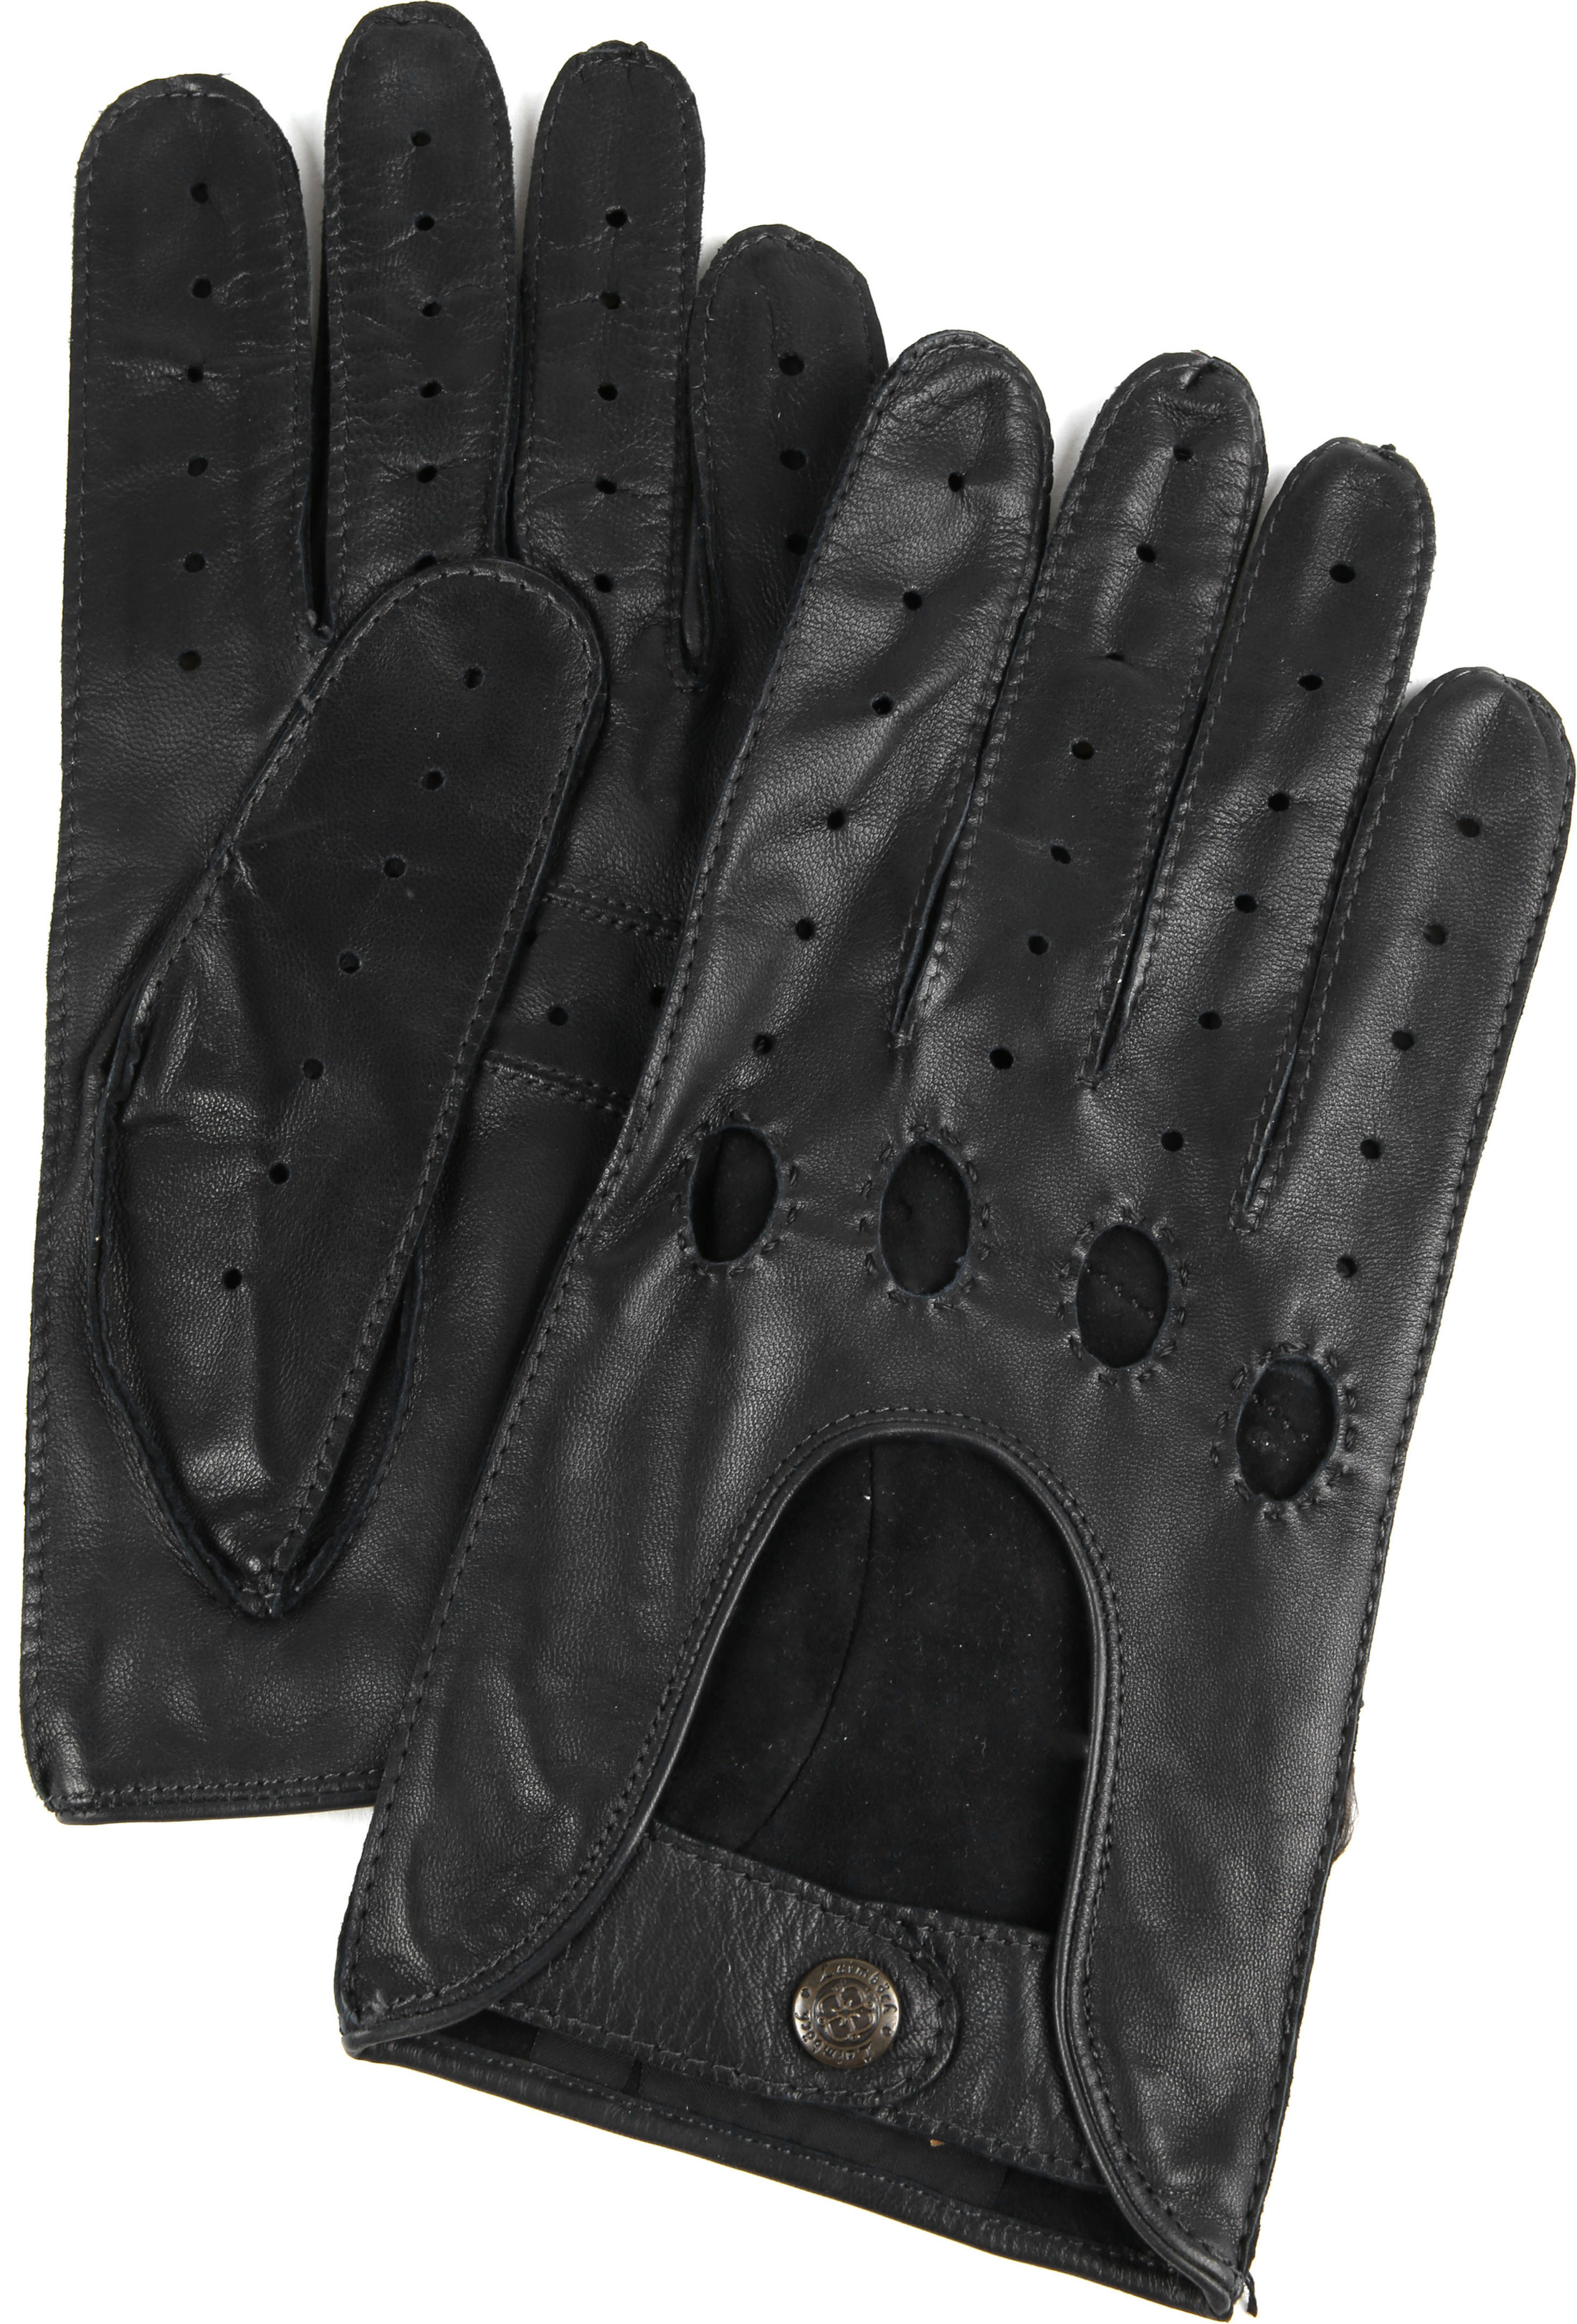 Laimbock Car Gloves Miami Black foto 0